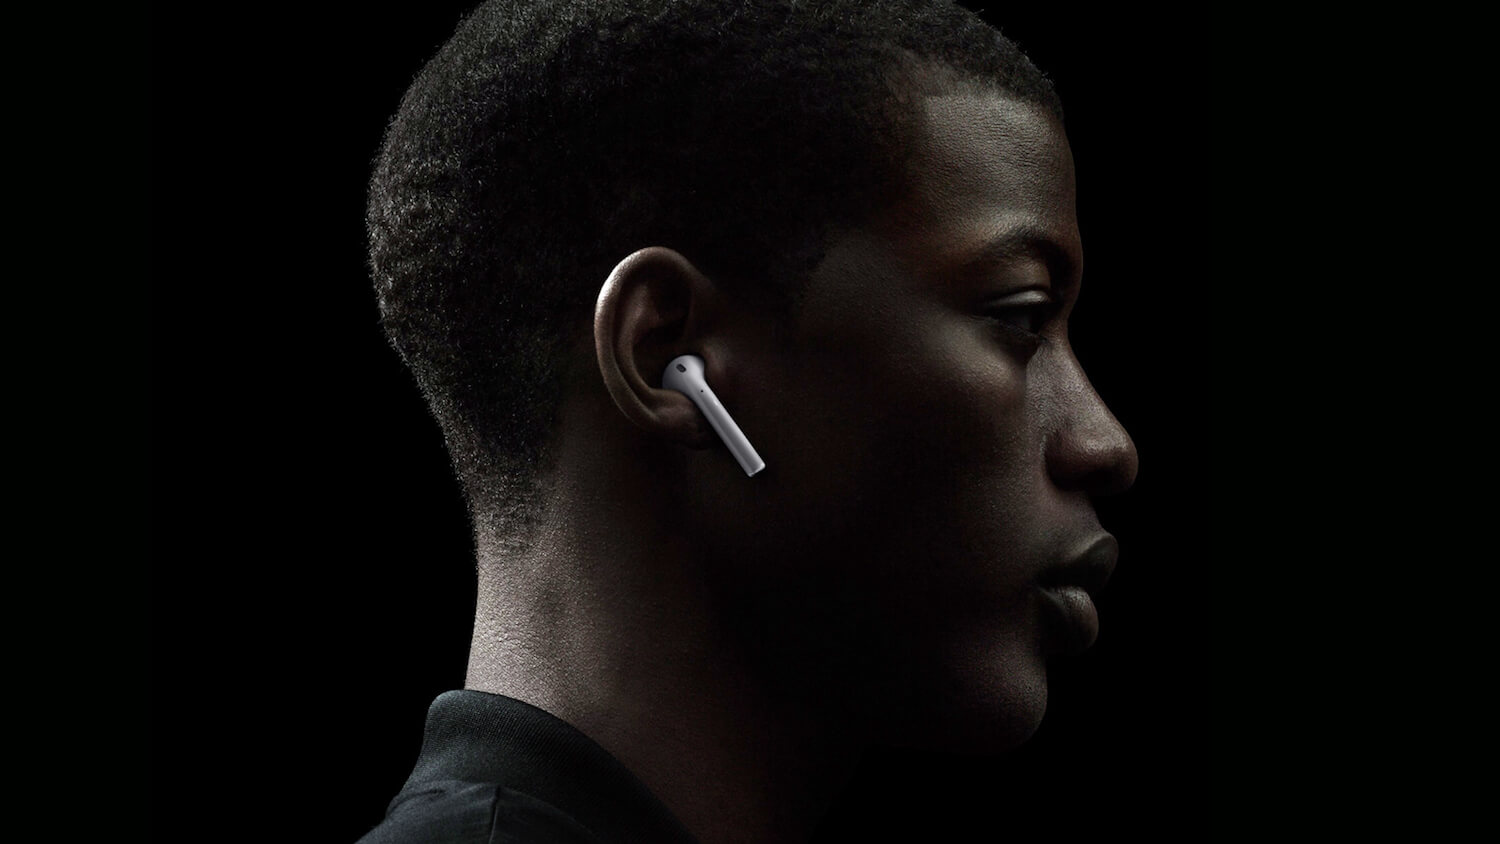 Reporters learned the reason for the delay of the start of sales of AirPods